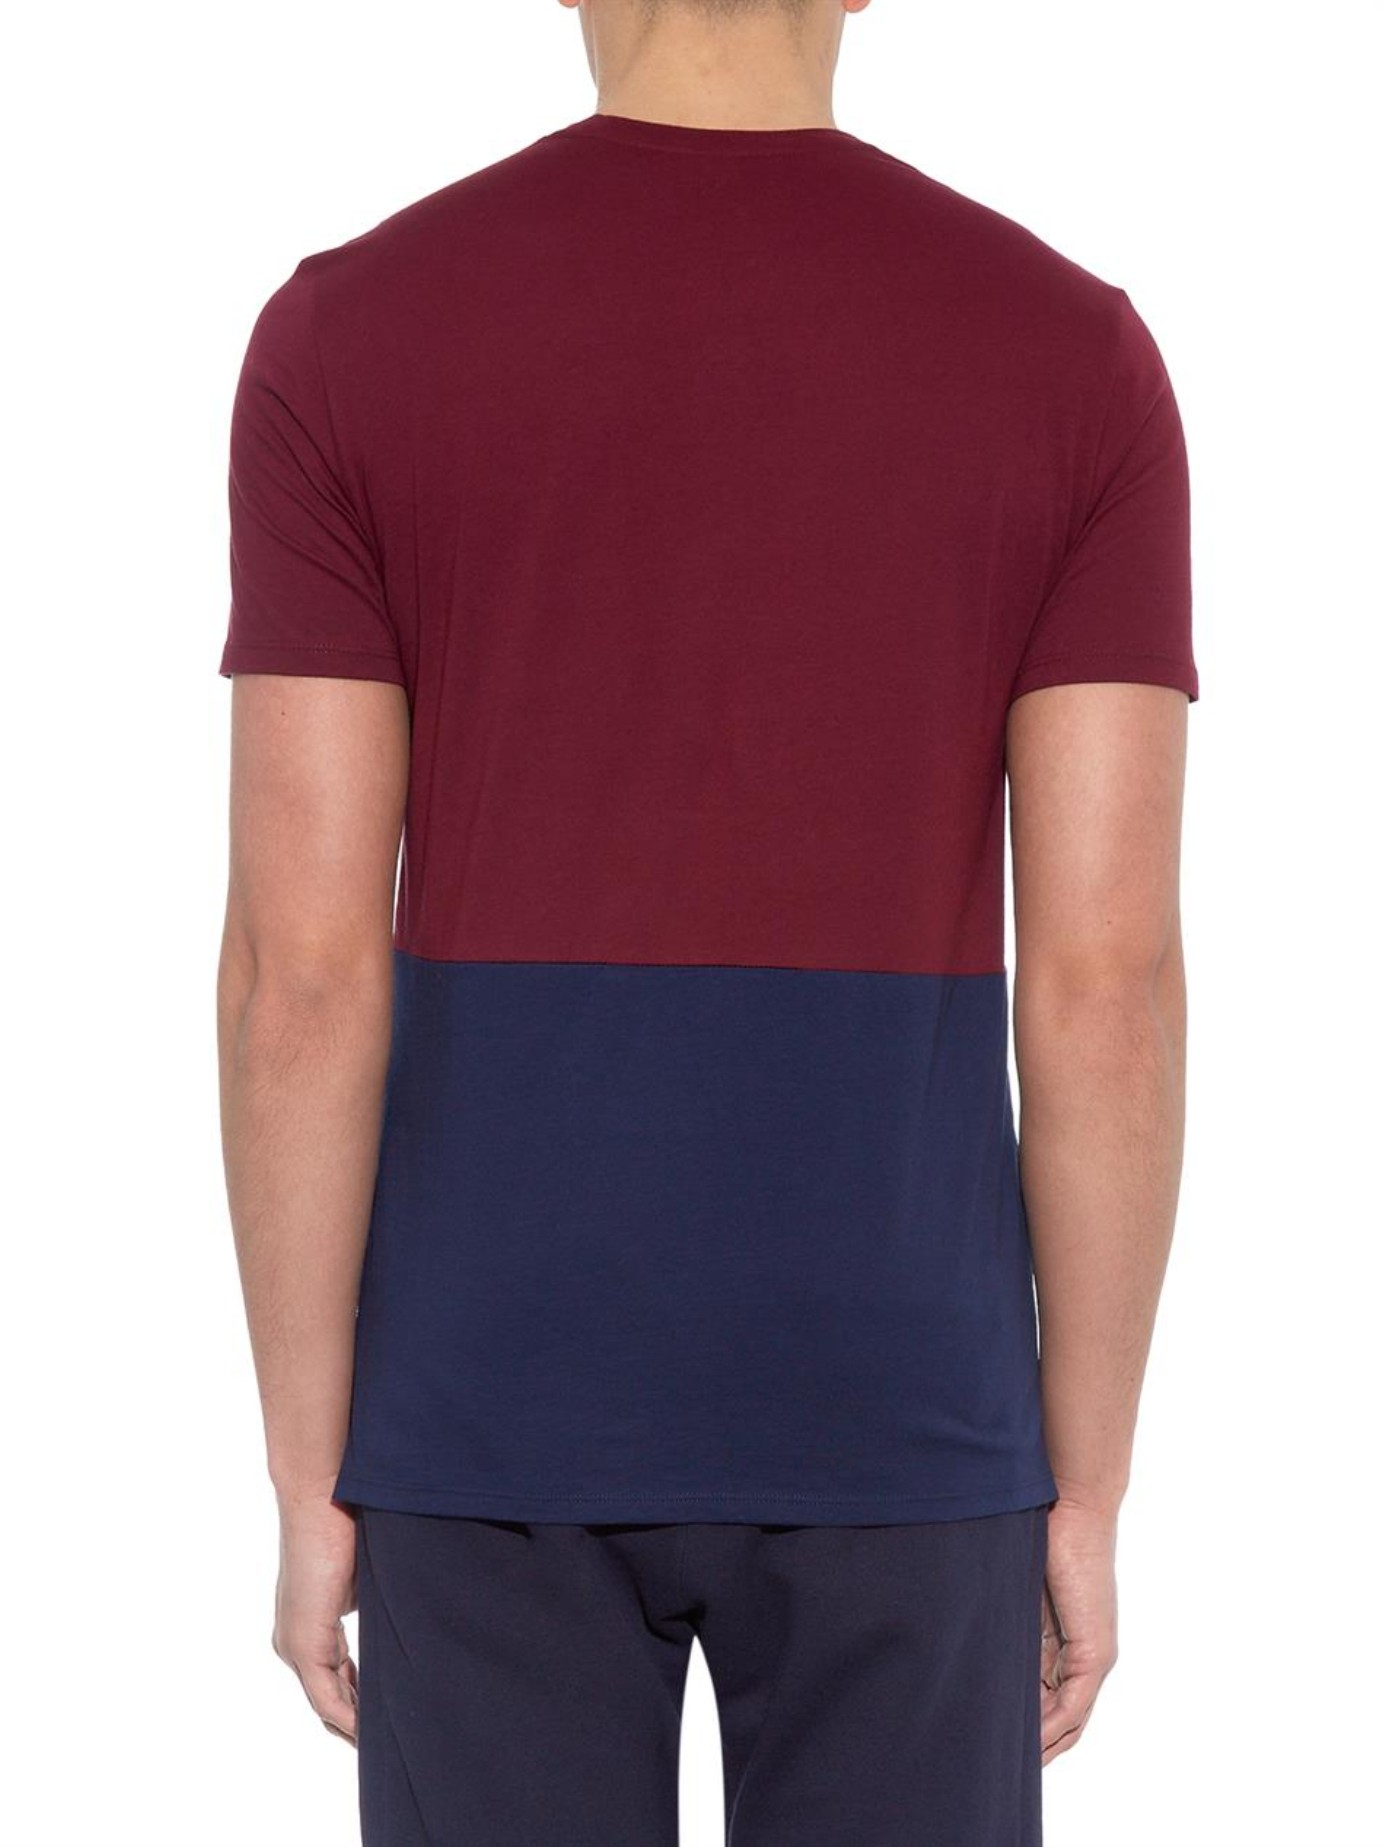 Lyst vince color blocked cotton jersey t shirt in purple for Vince tee shirts sale